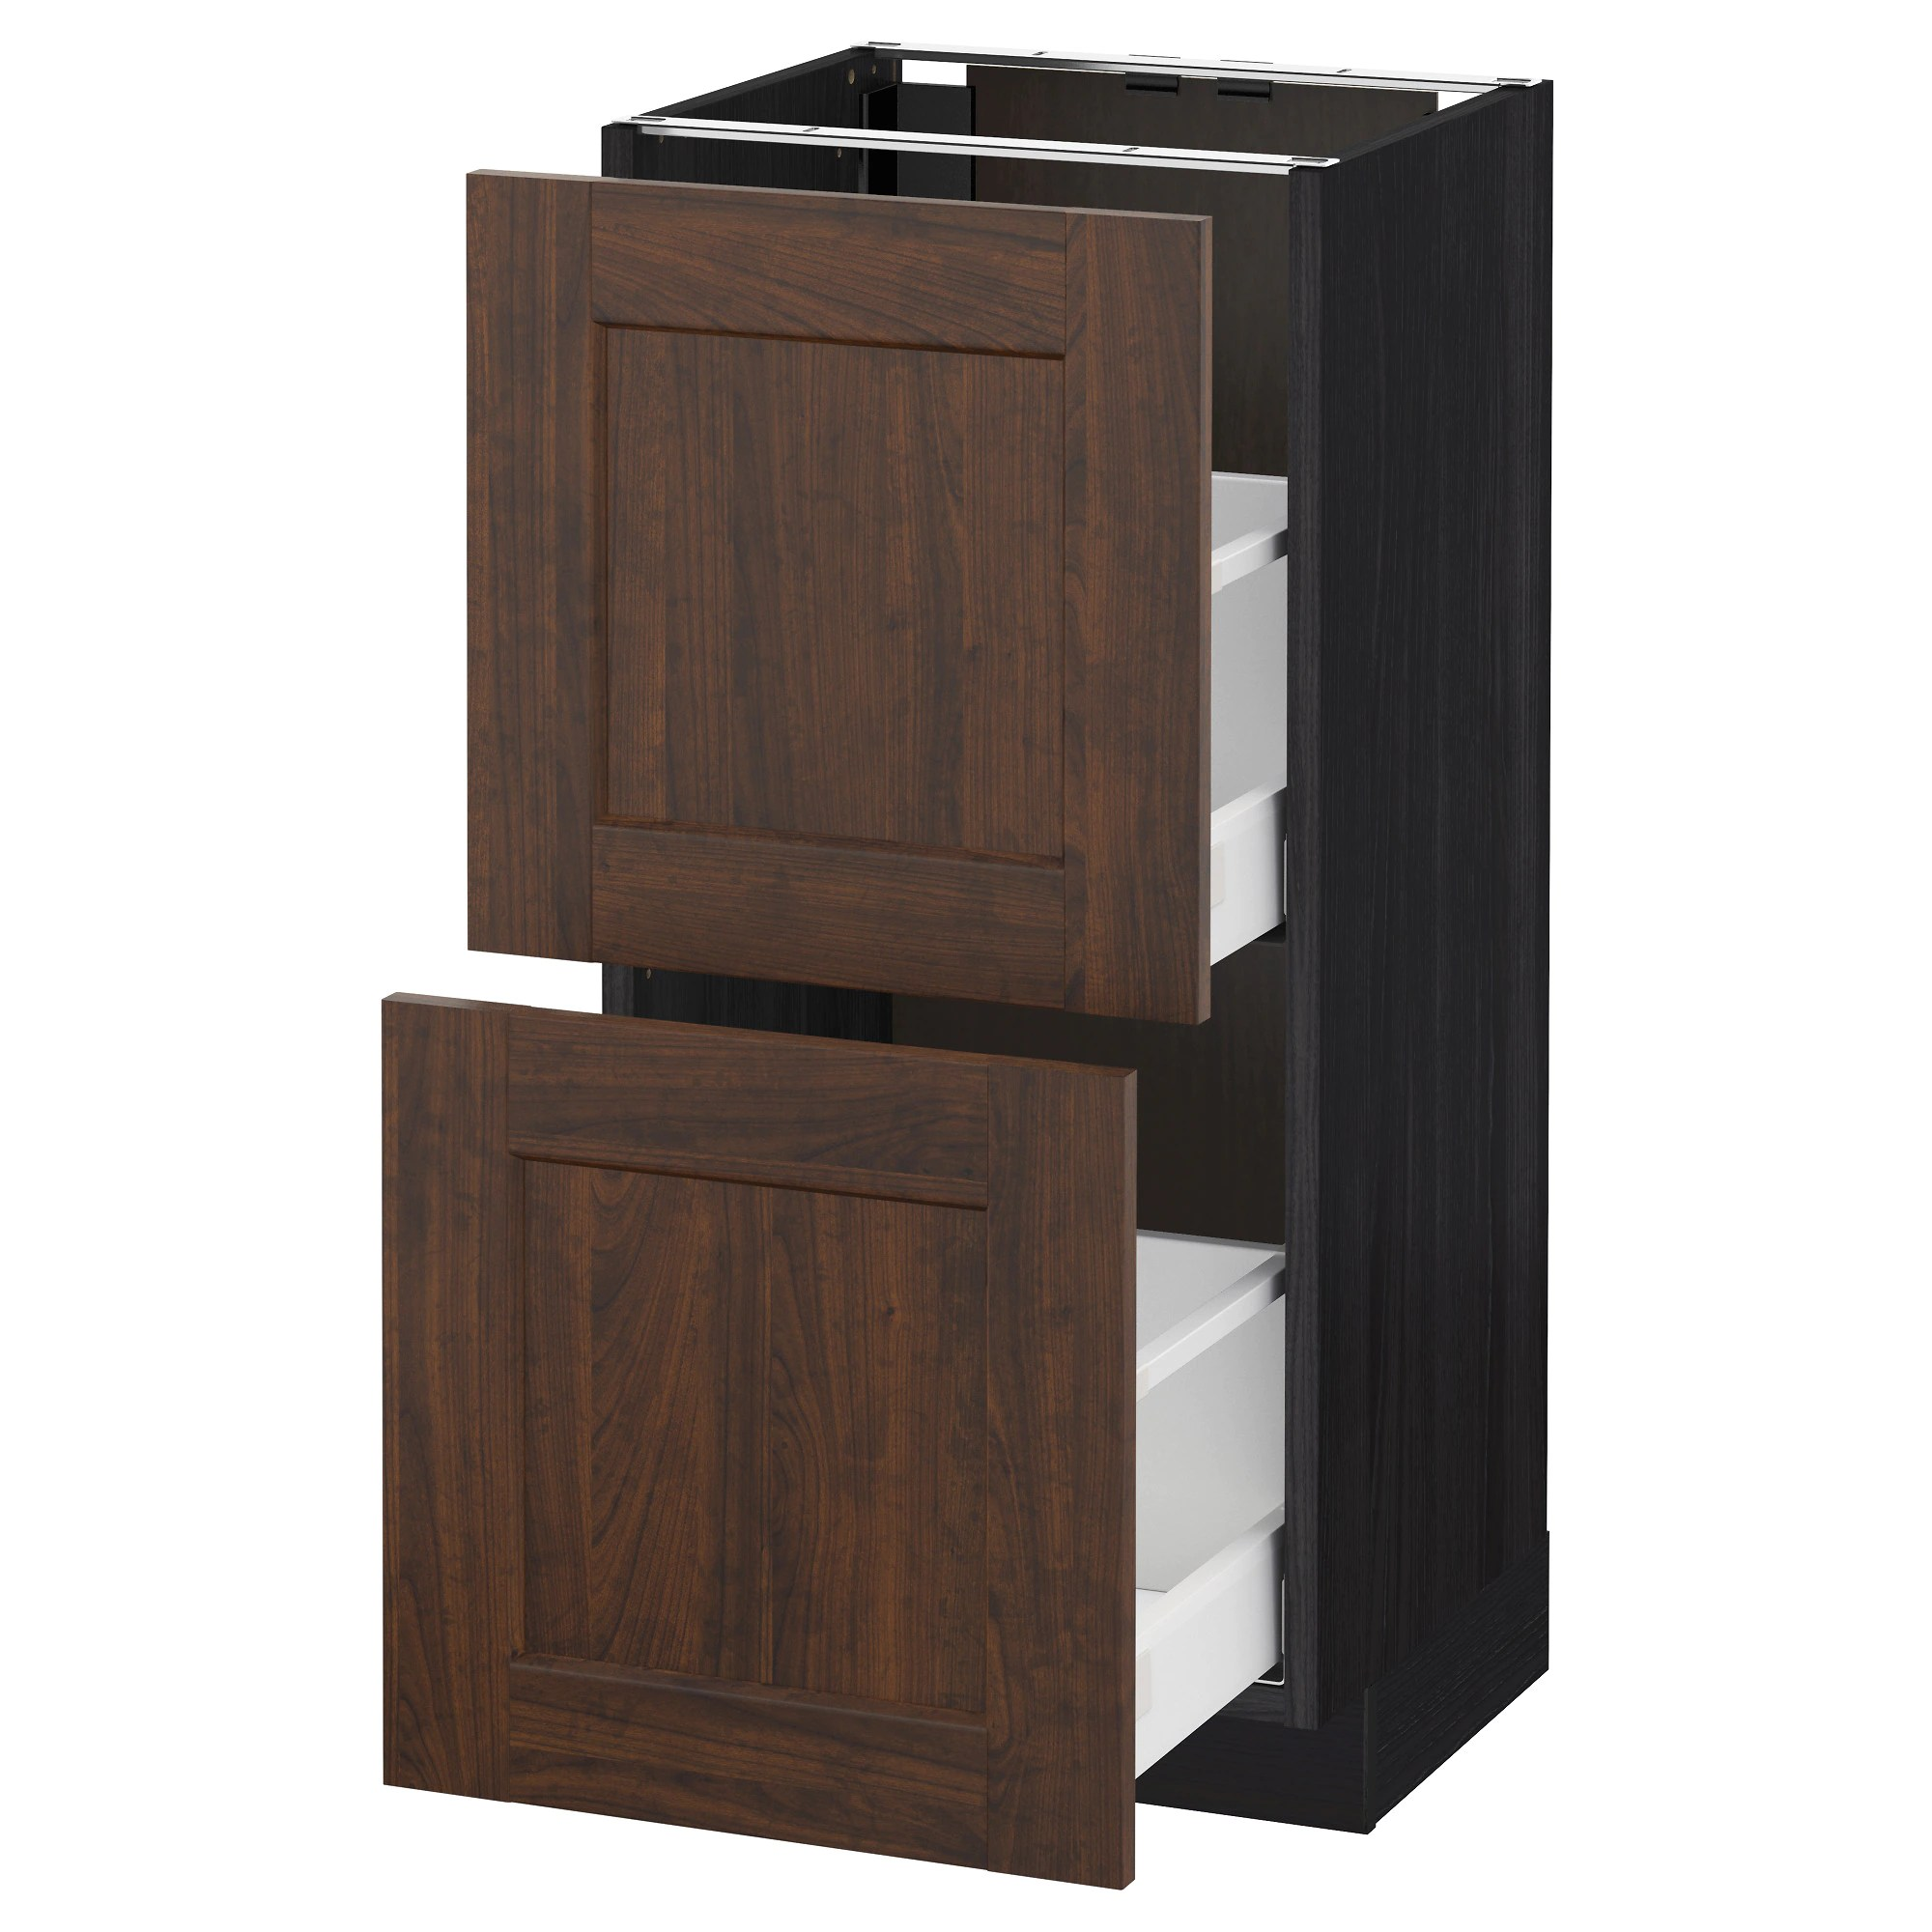 Cucina Ikea Metod Kungsbacka Metod Maximera Base Cabinet With 2 Drawers Black Kungsbacka Anthracite